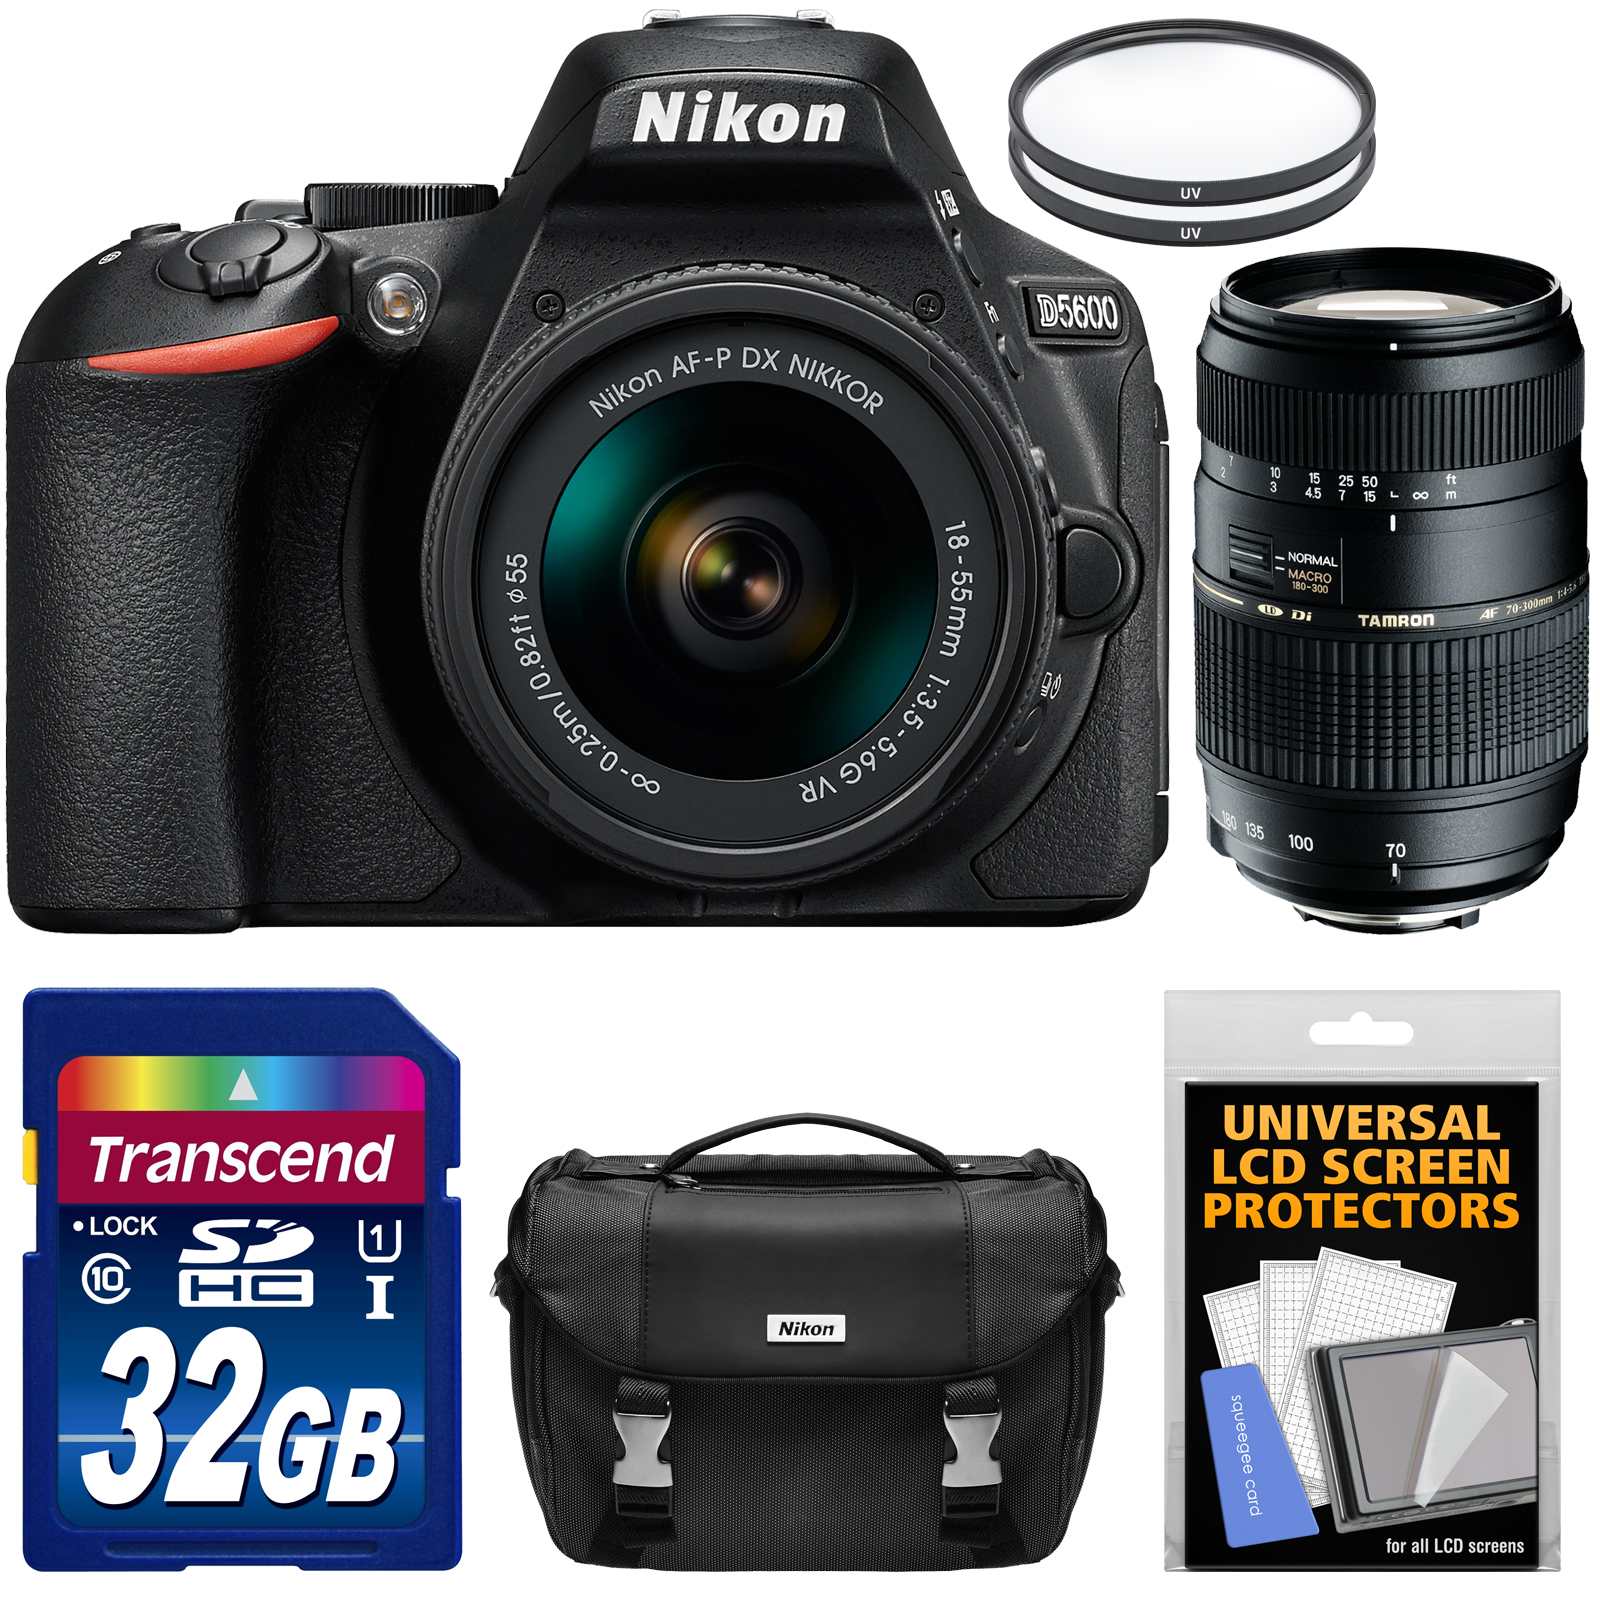 Nikon D5600 Digital SLR Camera & 18-55mm VR DX AF-P Lens Refurbished with Tamron 70-300mm Lens + 32GB Card +... by Nikon